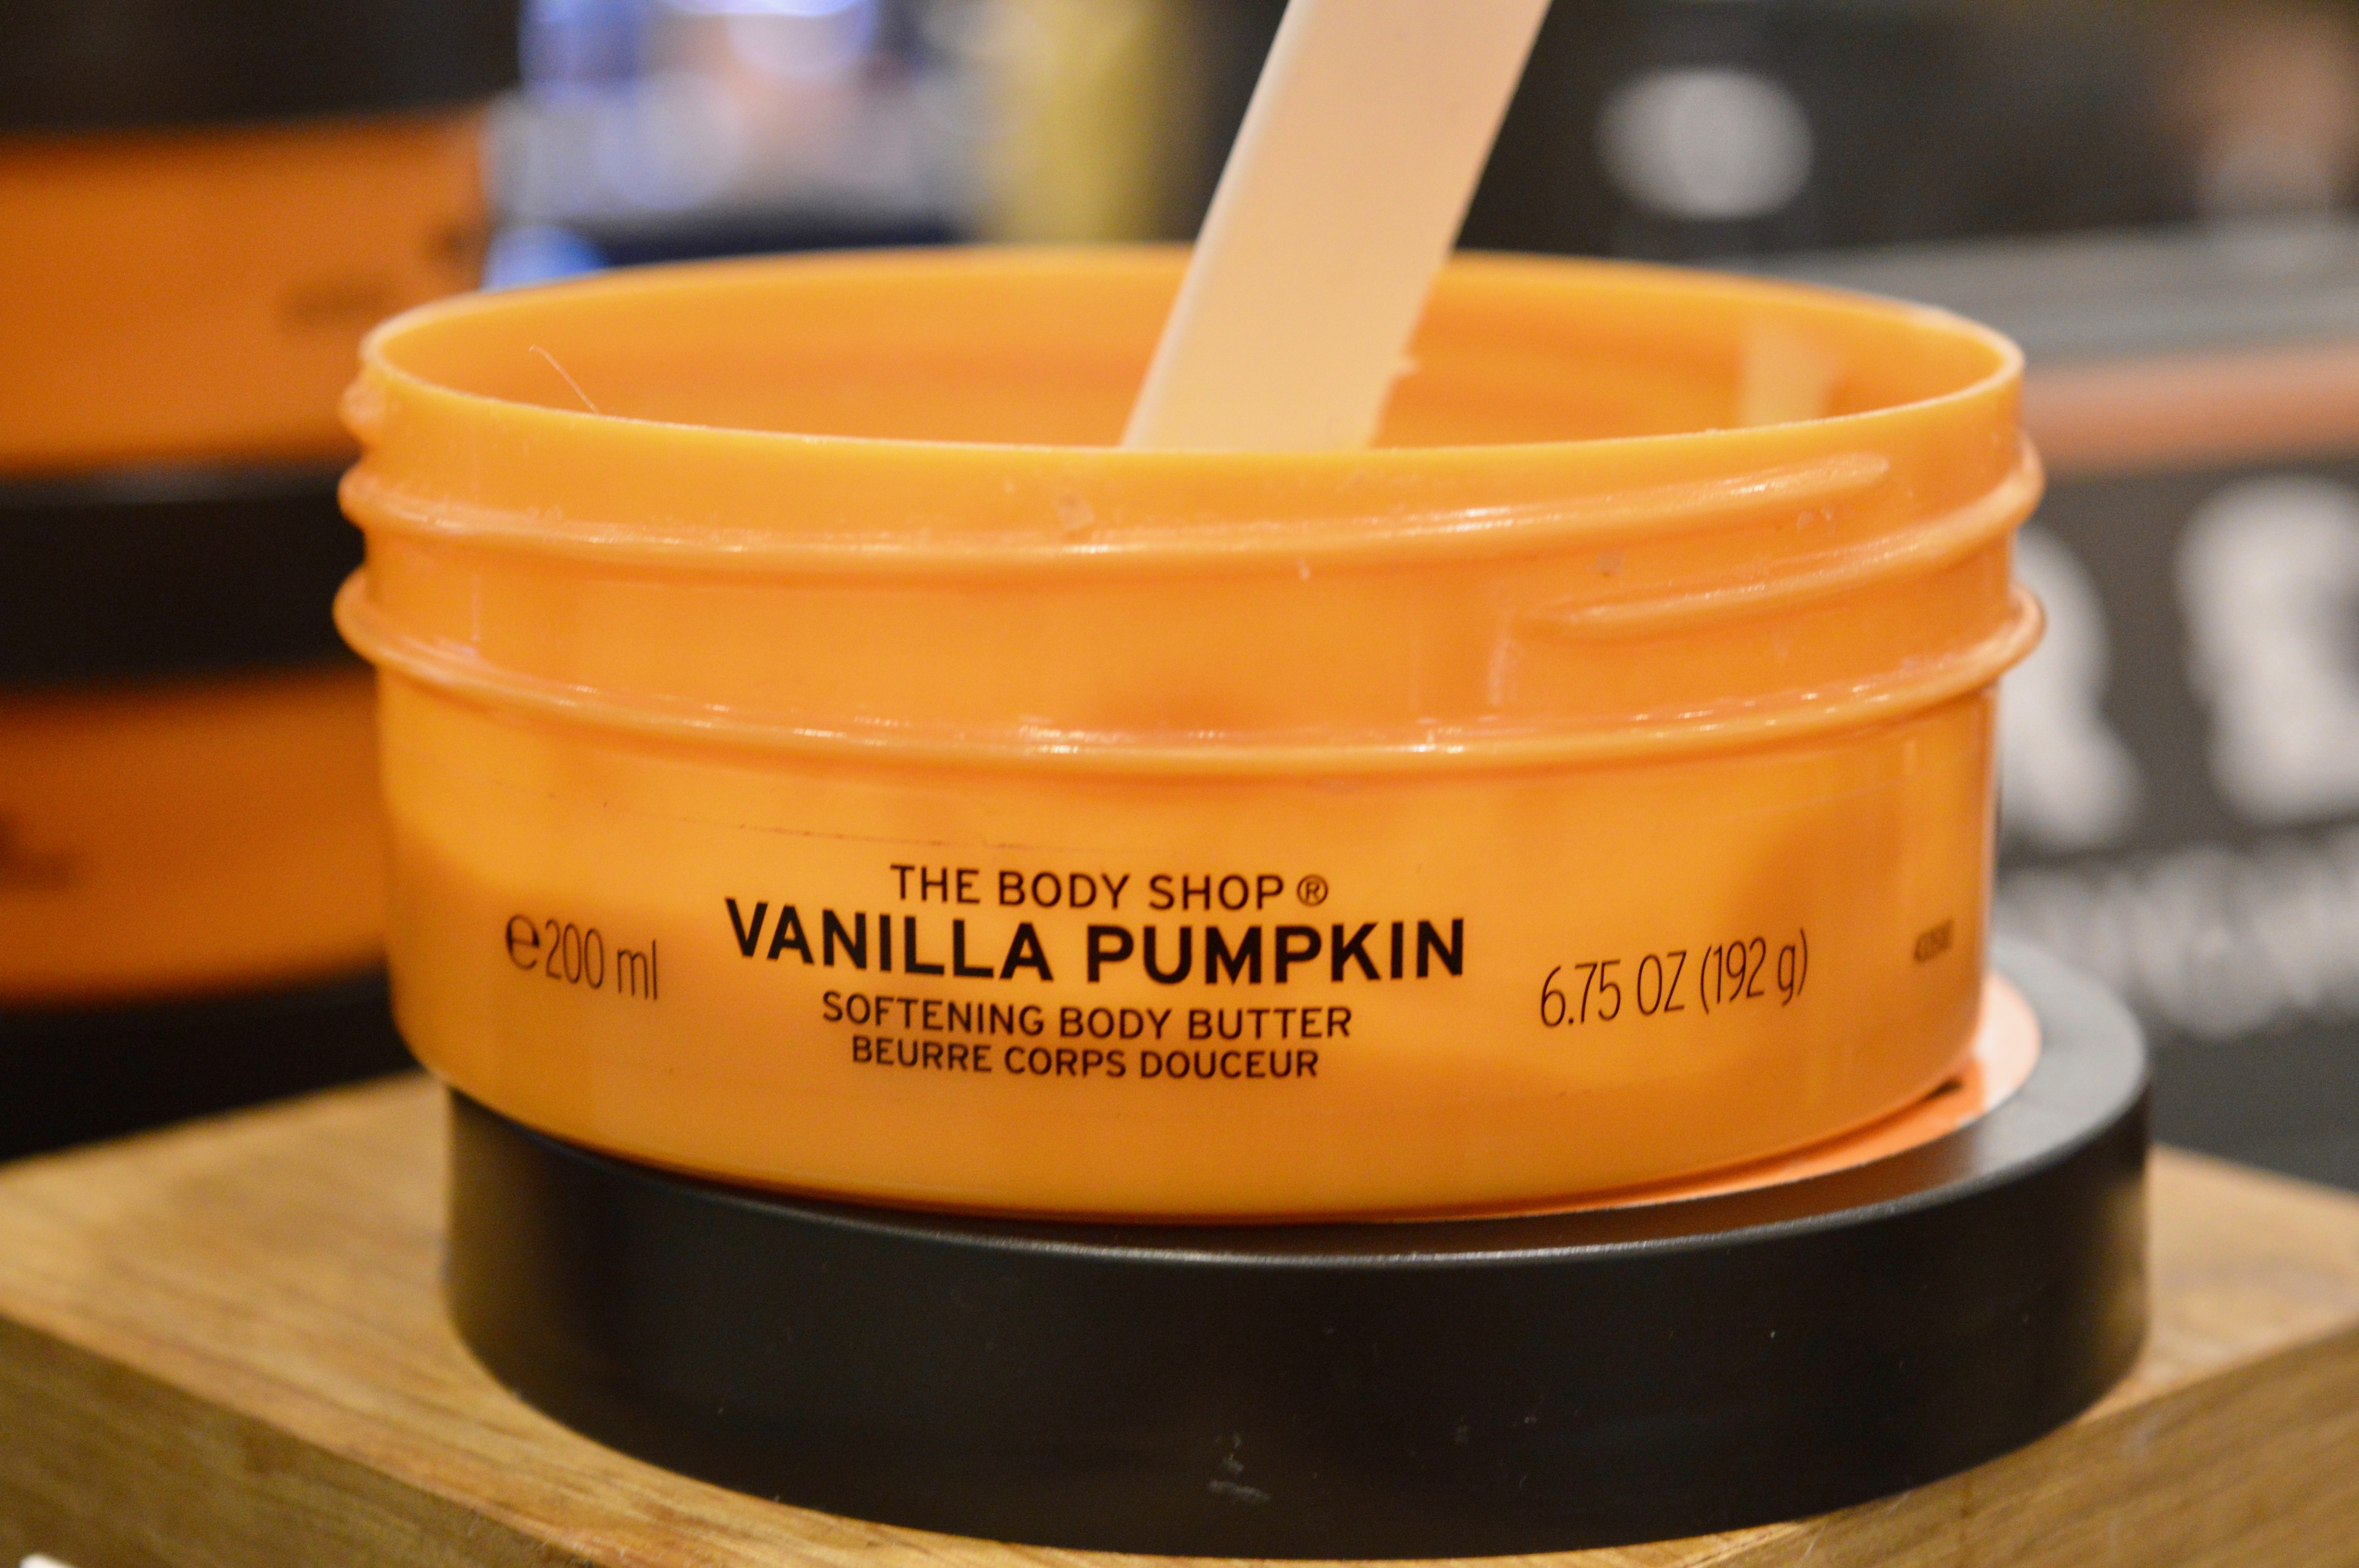 VANILLA-pumpkin-the-body-shop-gianni-edit-intu-metrocentre-gateshead-elle-blonde-luxury-lifestyle-destination-blog